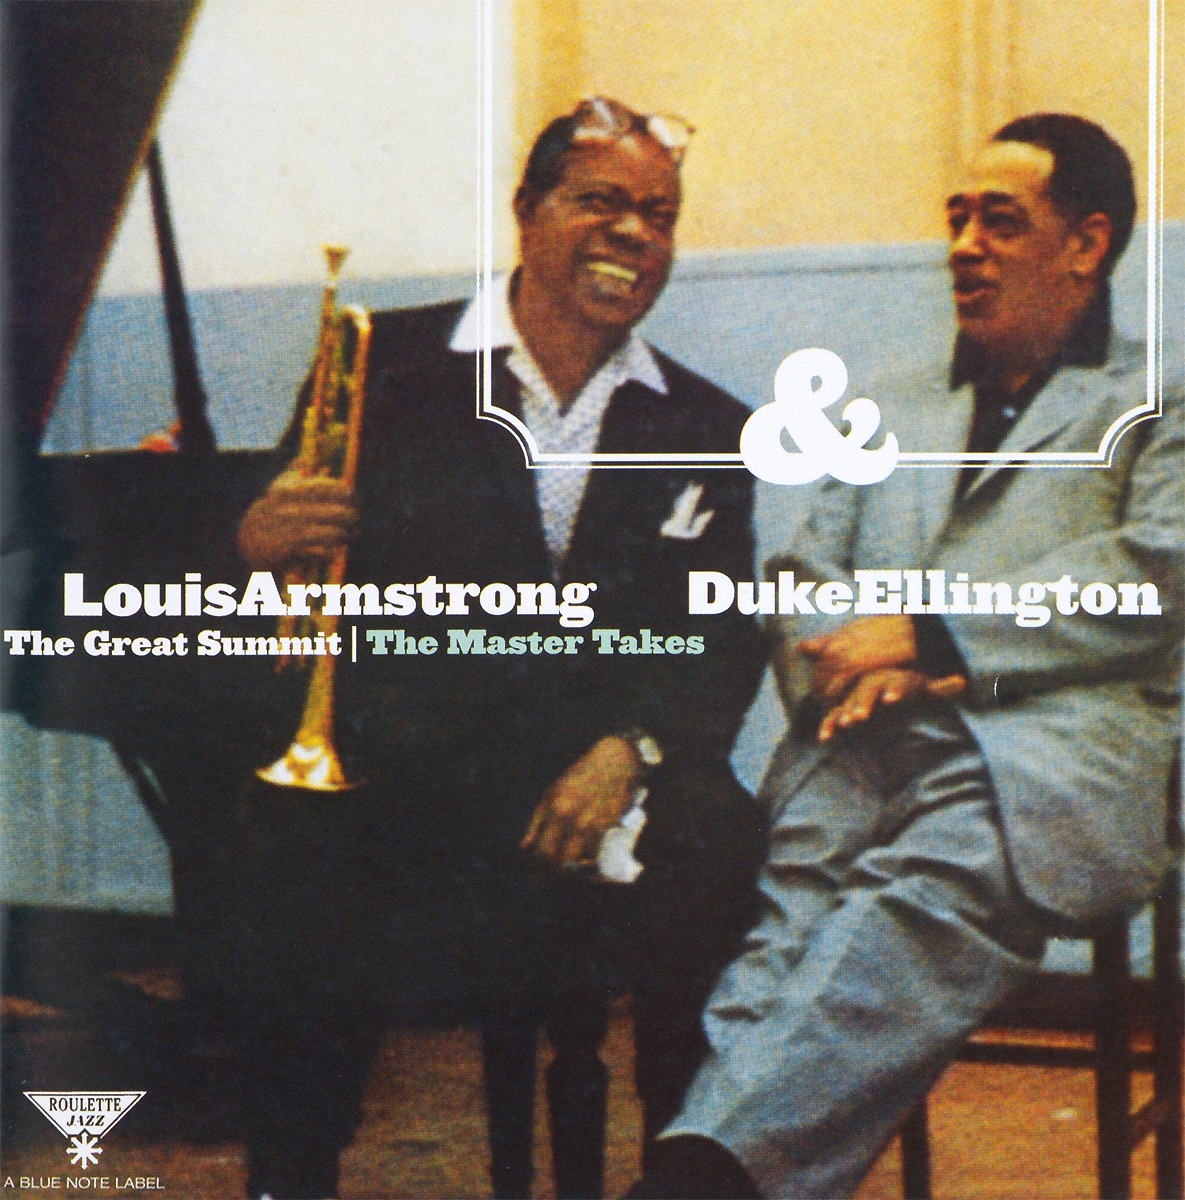 Луи Армстронг,Дюк Эллингтон Louis Armstrong & Duke Ellington. The Great Summit. The Master Takes каунт бэйси дюк эллингтон duke ellington count basie duke ellington meets count basie